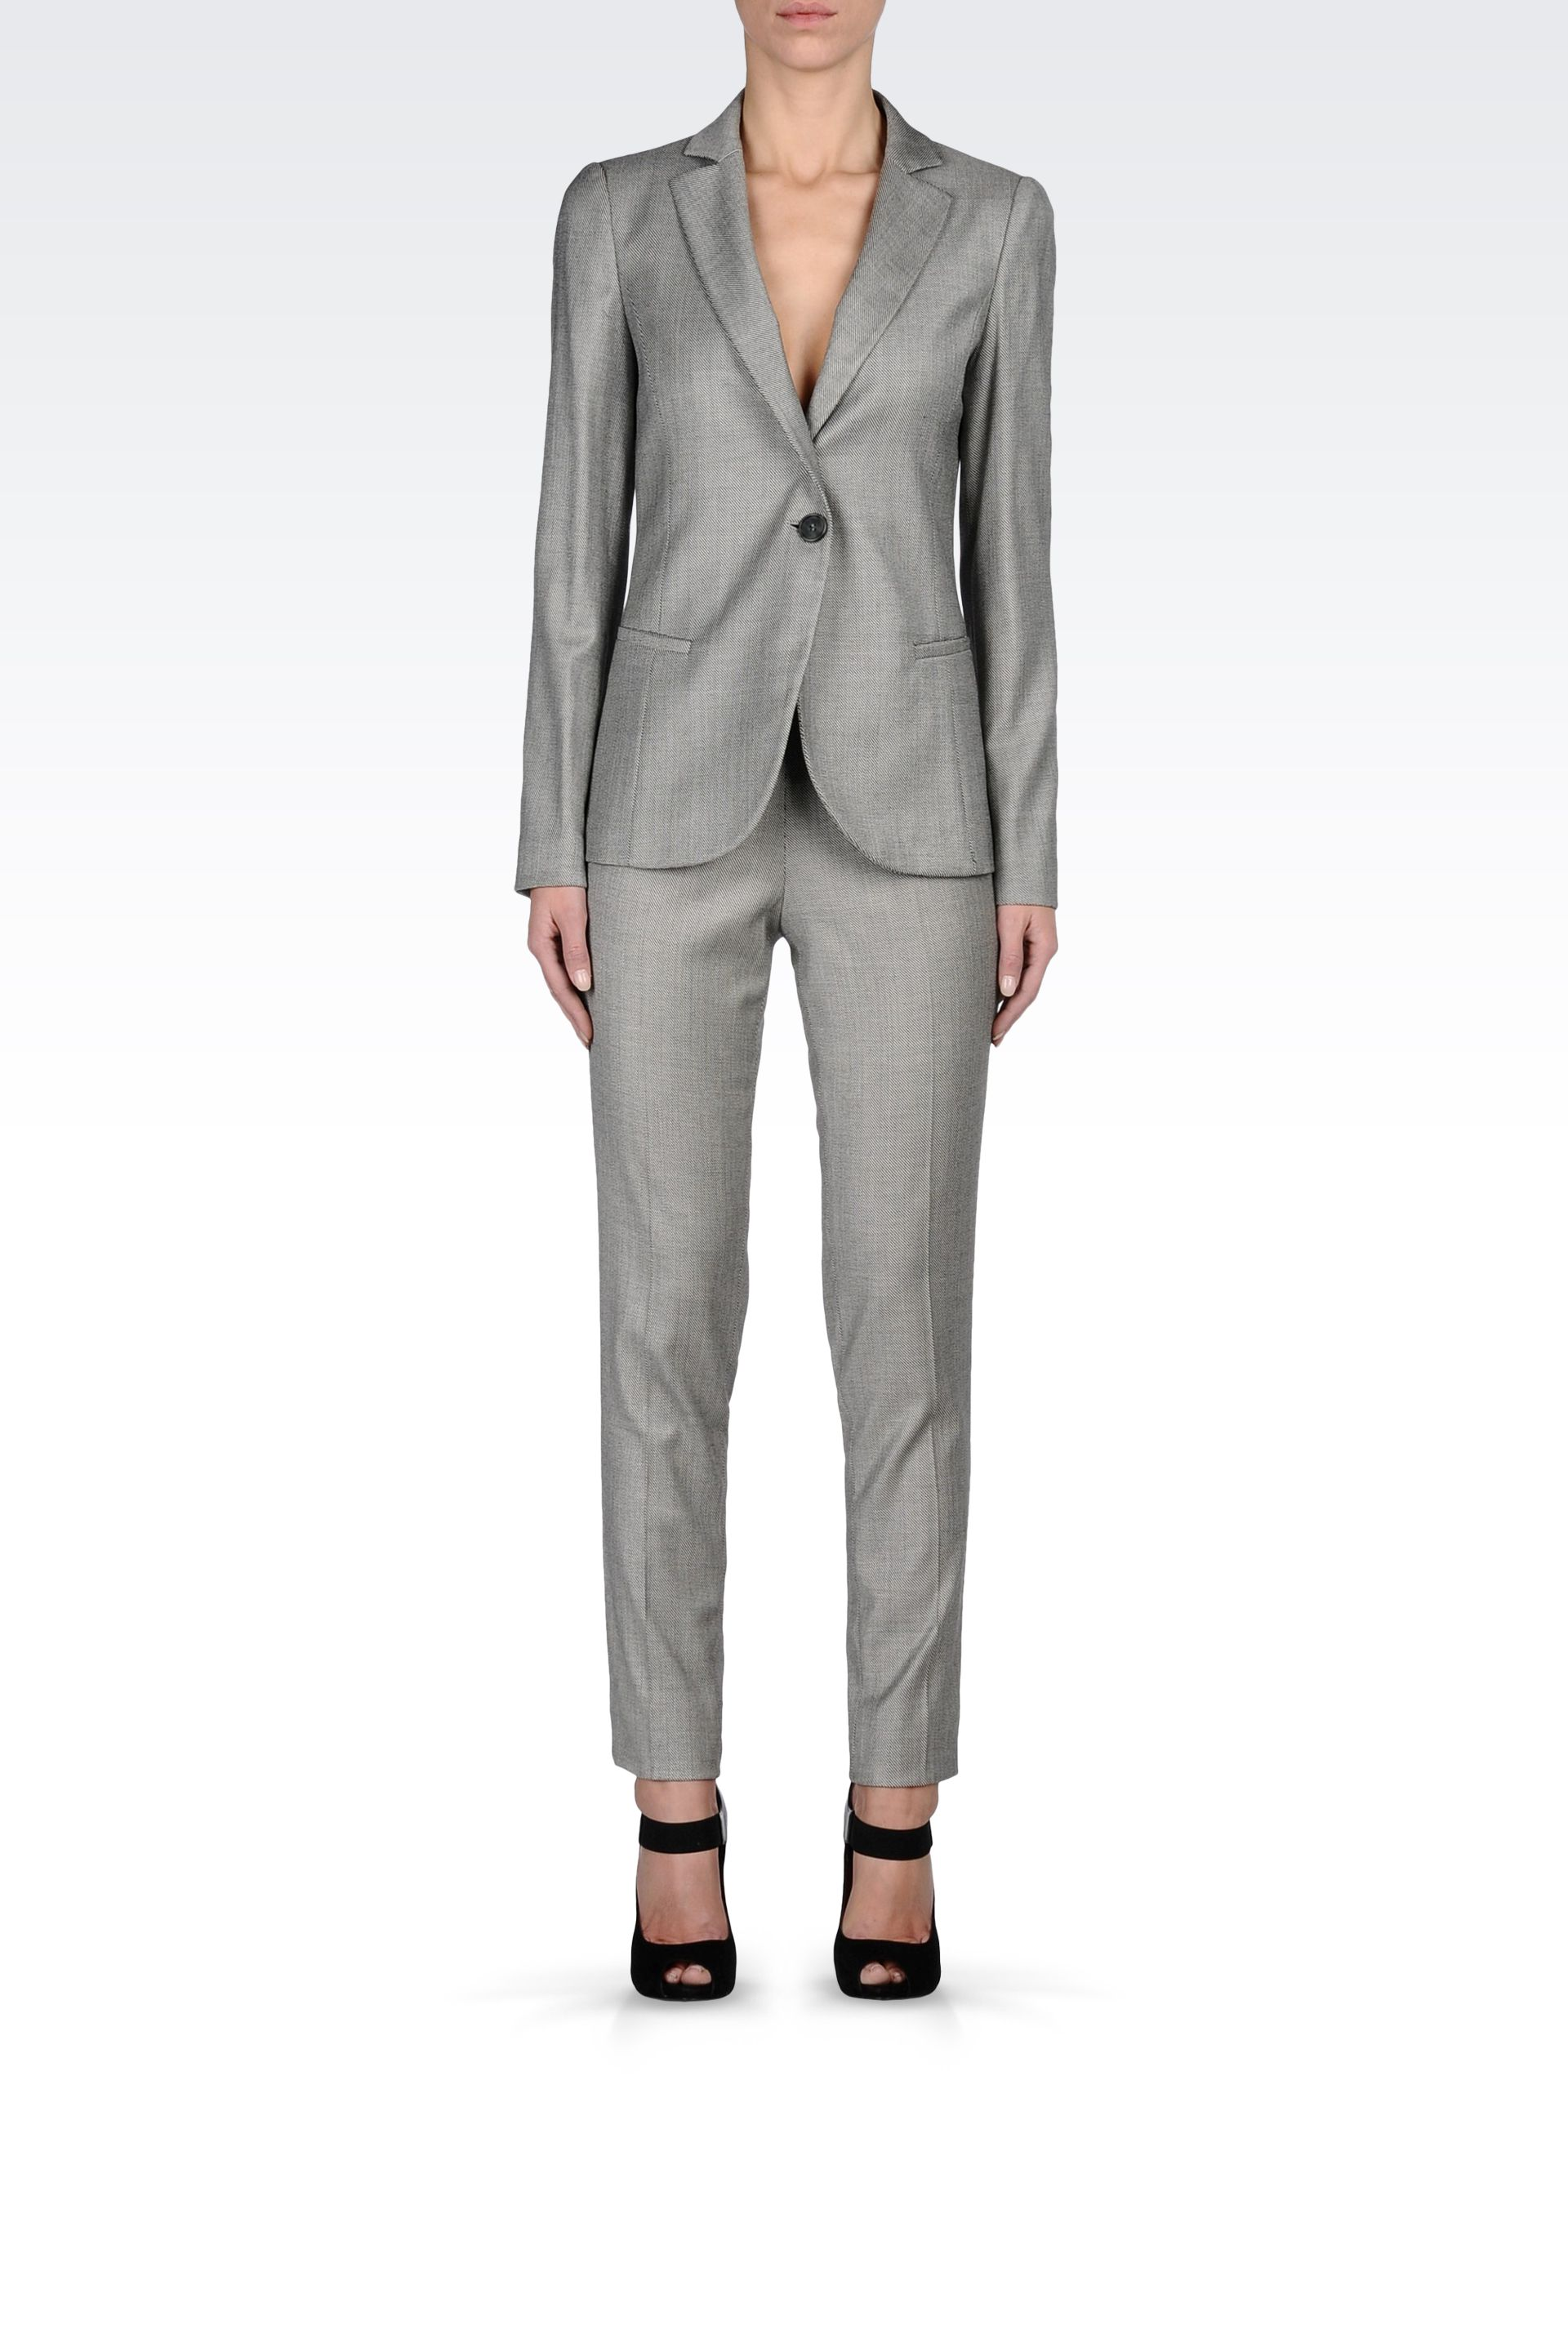 Original Women S Suits Pant Suits Women S Business Suits Tailored Suits Woman